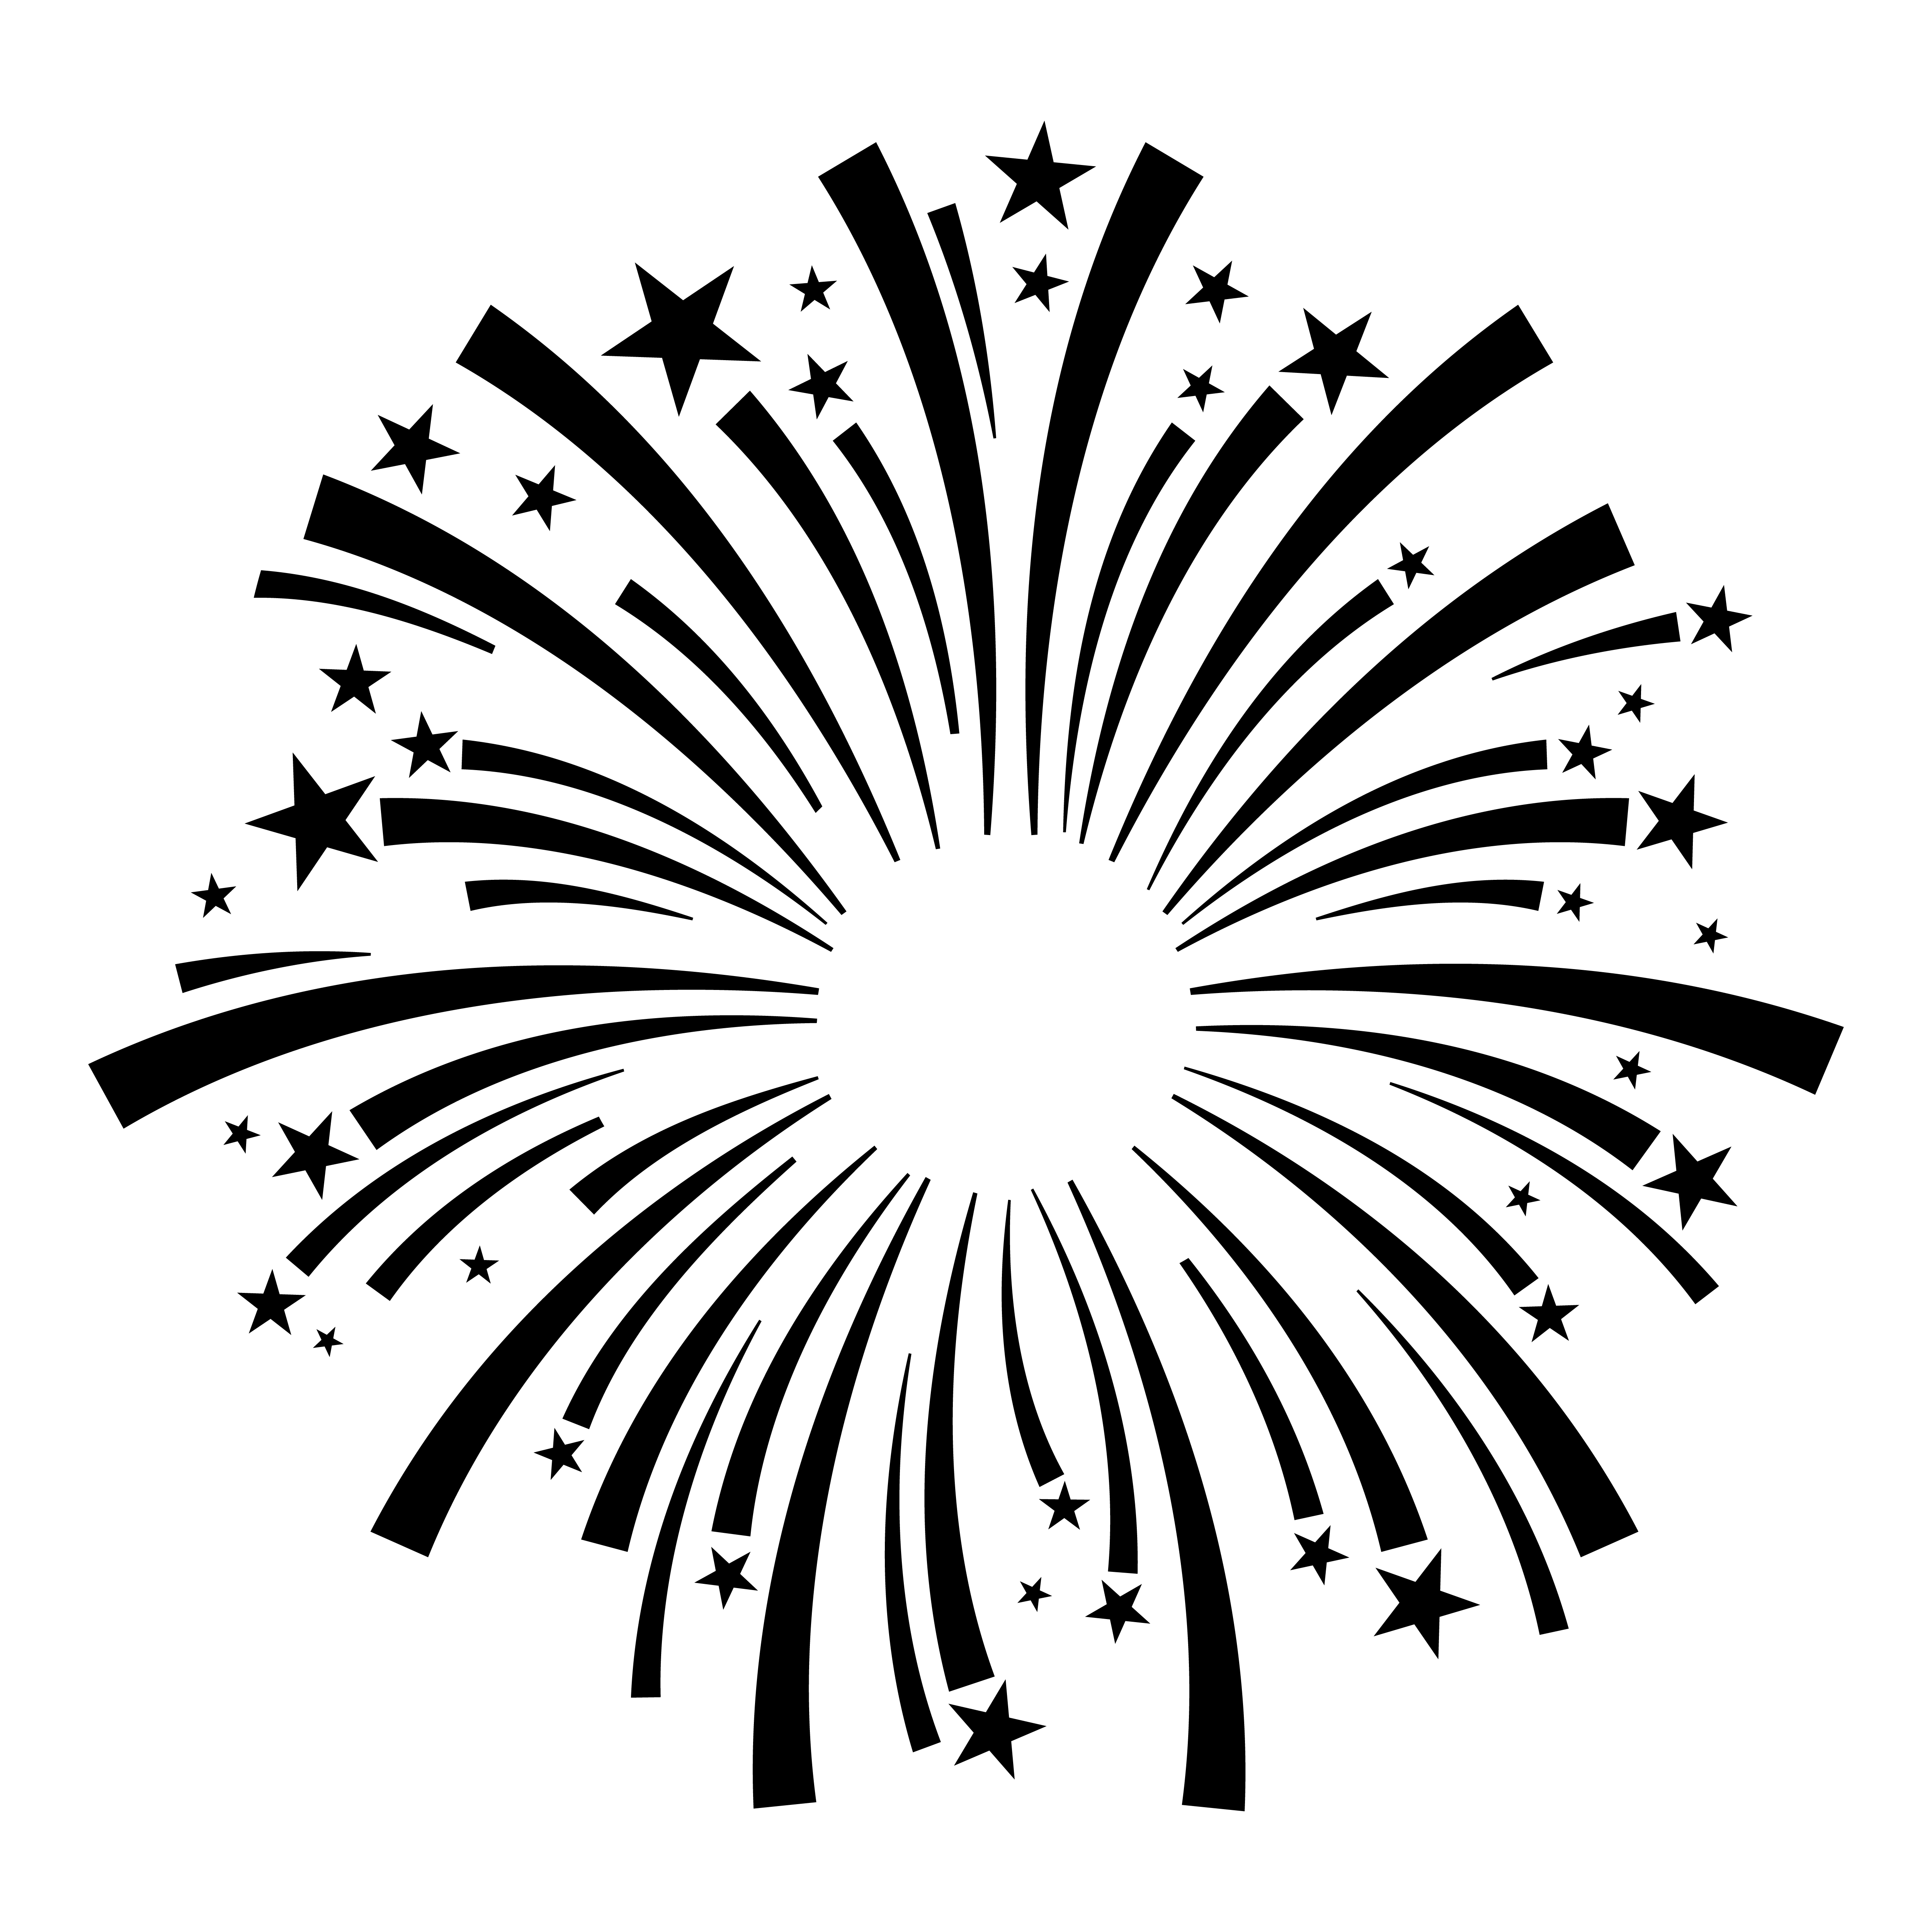 Exploding Fireworks logo vector icon - Download Free ...Fireworks Icon